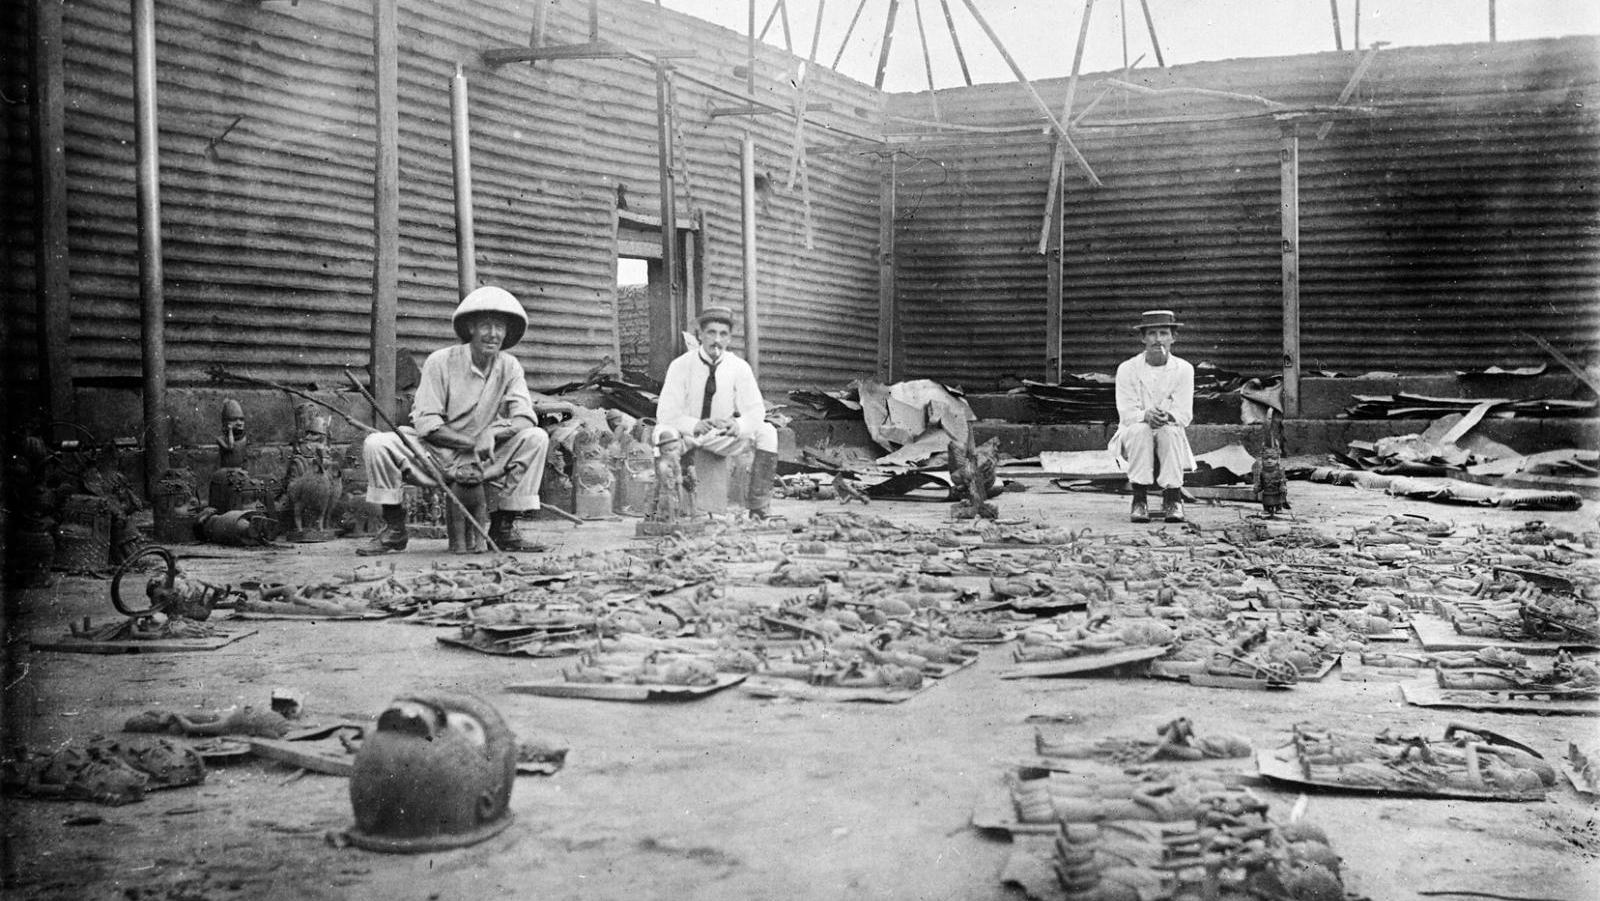 Interior of Oba's Compound Burnt During Seige of Benin City (present day Nigeria), with Bronze Plaques in the Foreground and Three British Soldiers of the Benin Punative Expedition 9-18 February 1897. Photographer Reginald Granville